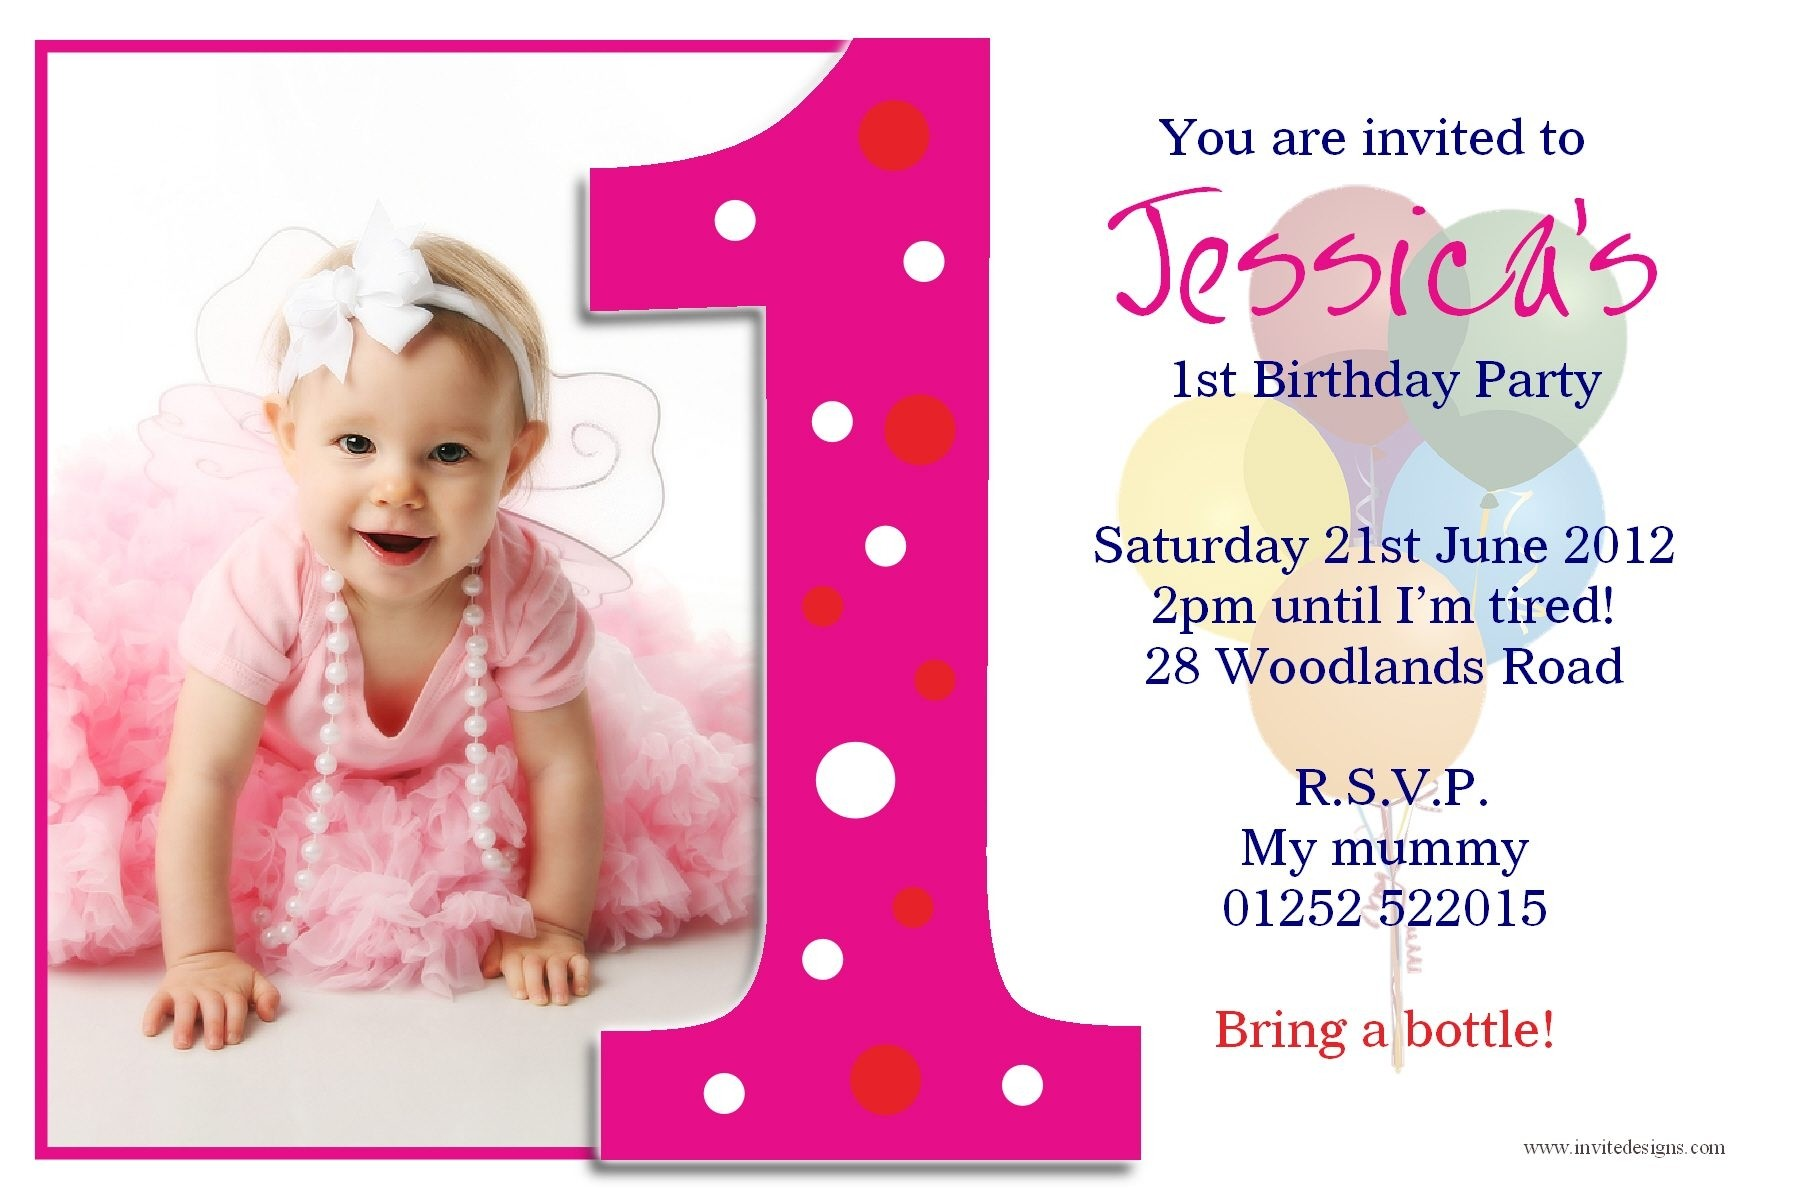 birthday invitation card template ; invitation-cards-of-first-birthday-best-of-1st-birthday-invitation-card-template-yspages-com